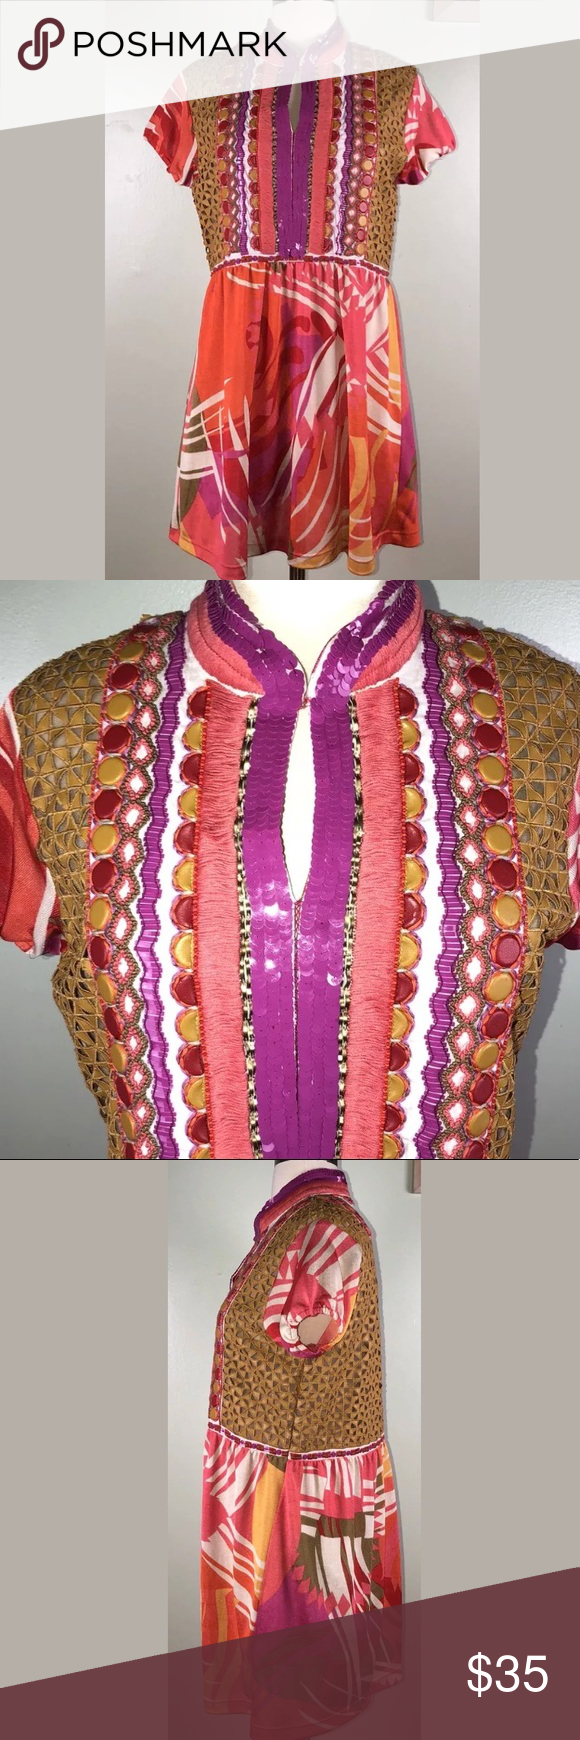 """f1a3154da43 Ranna Gill XS Tunic Boho Bling Indian Excellent flawless condition. Beautiful  sequins and beadwork. Measured lying flat: armpit to armpit 18""""."""